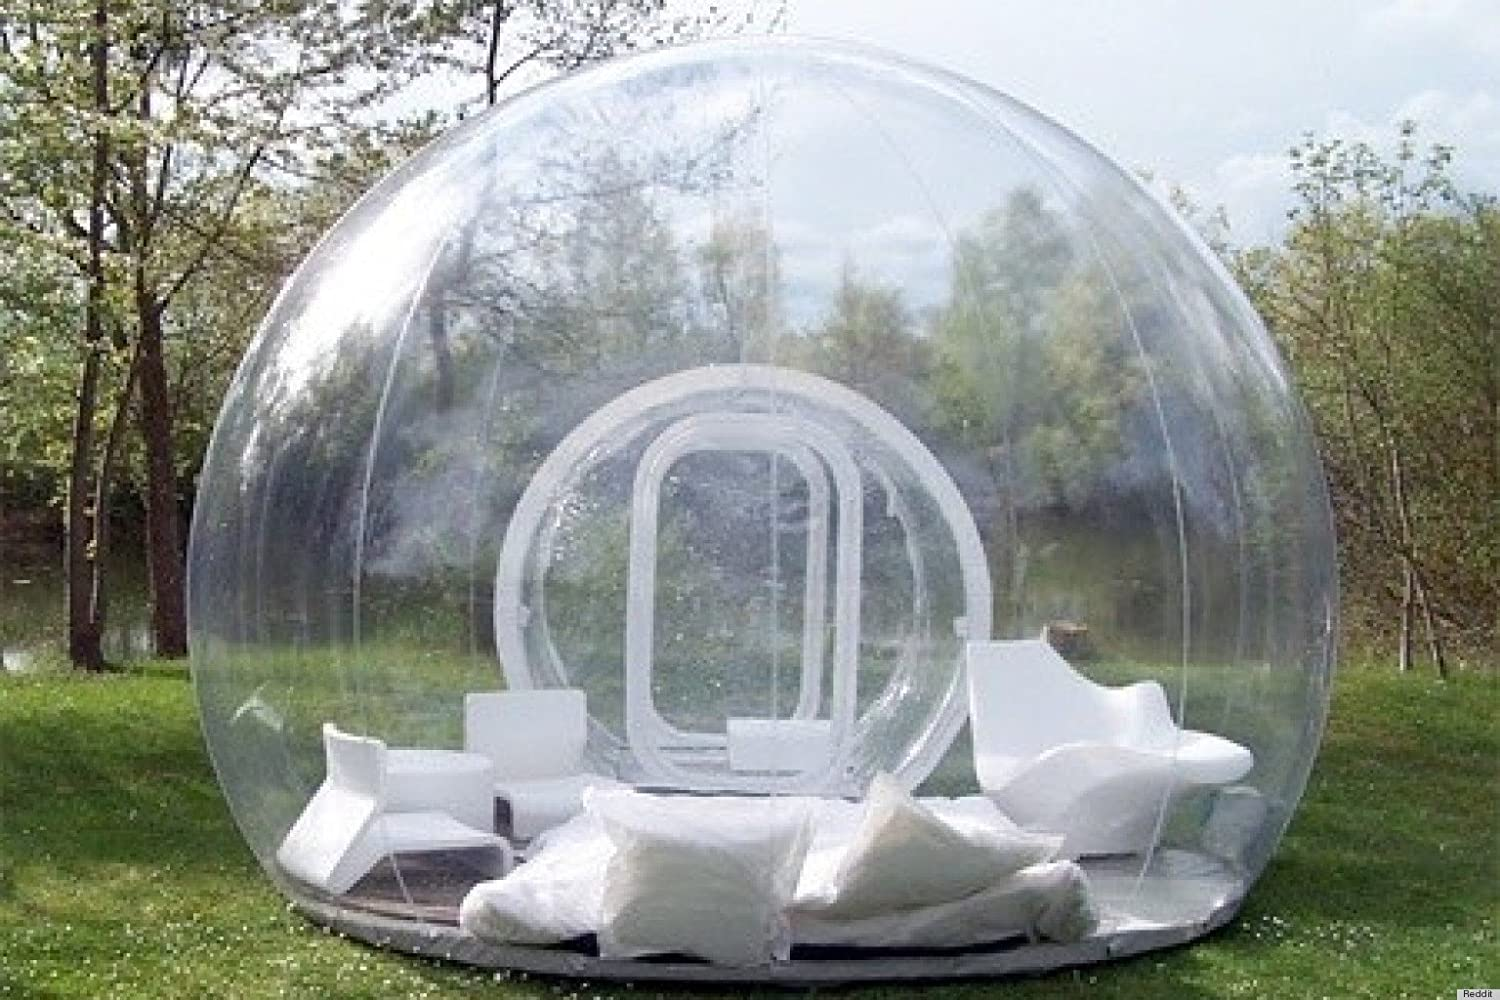 Amazon.com Outdoor Single Tunnel Inflatable Bubble Tent Family C&ing Backyard Transparent Garden u0026 Outdoor & Amazon.com: Outdoor Single Tunnel Inflatable Bubble Tent Family ...